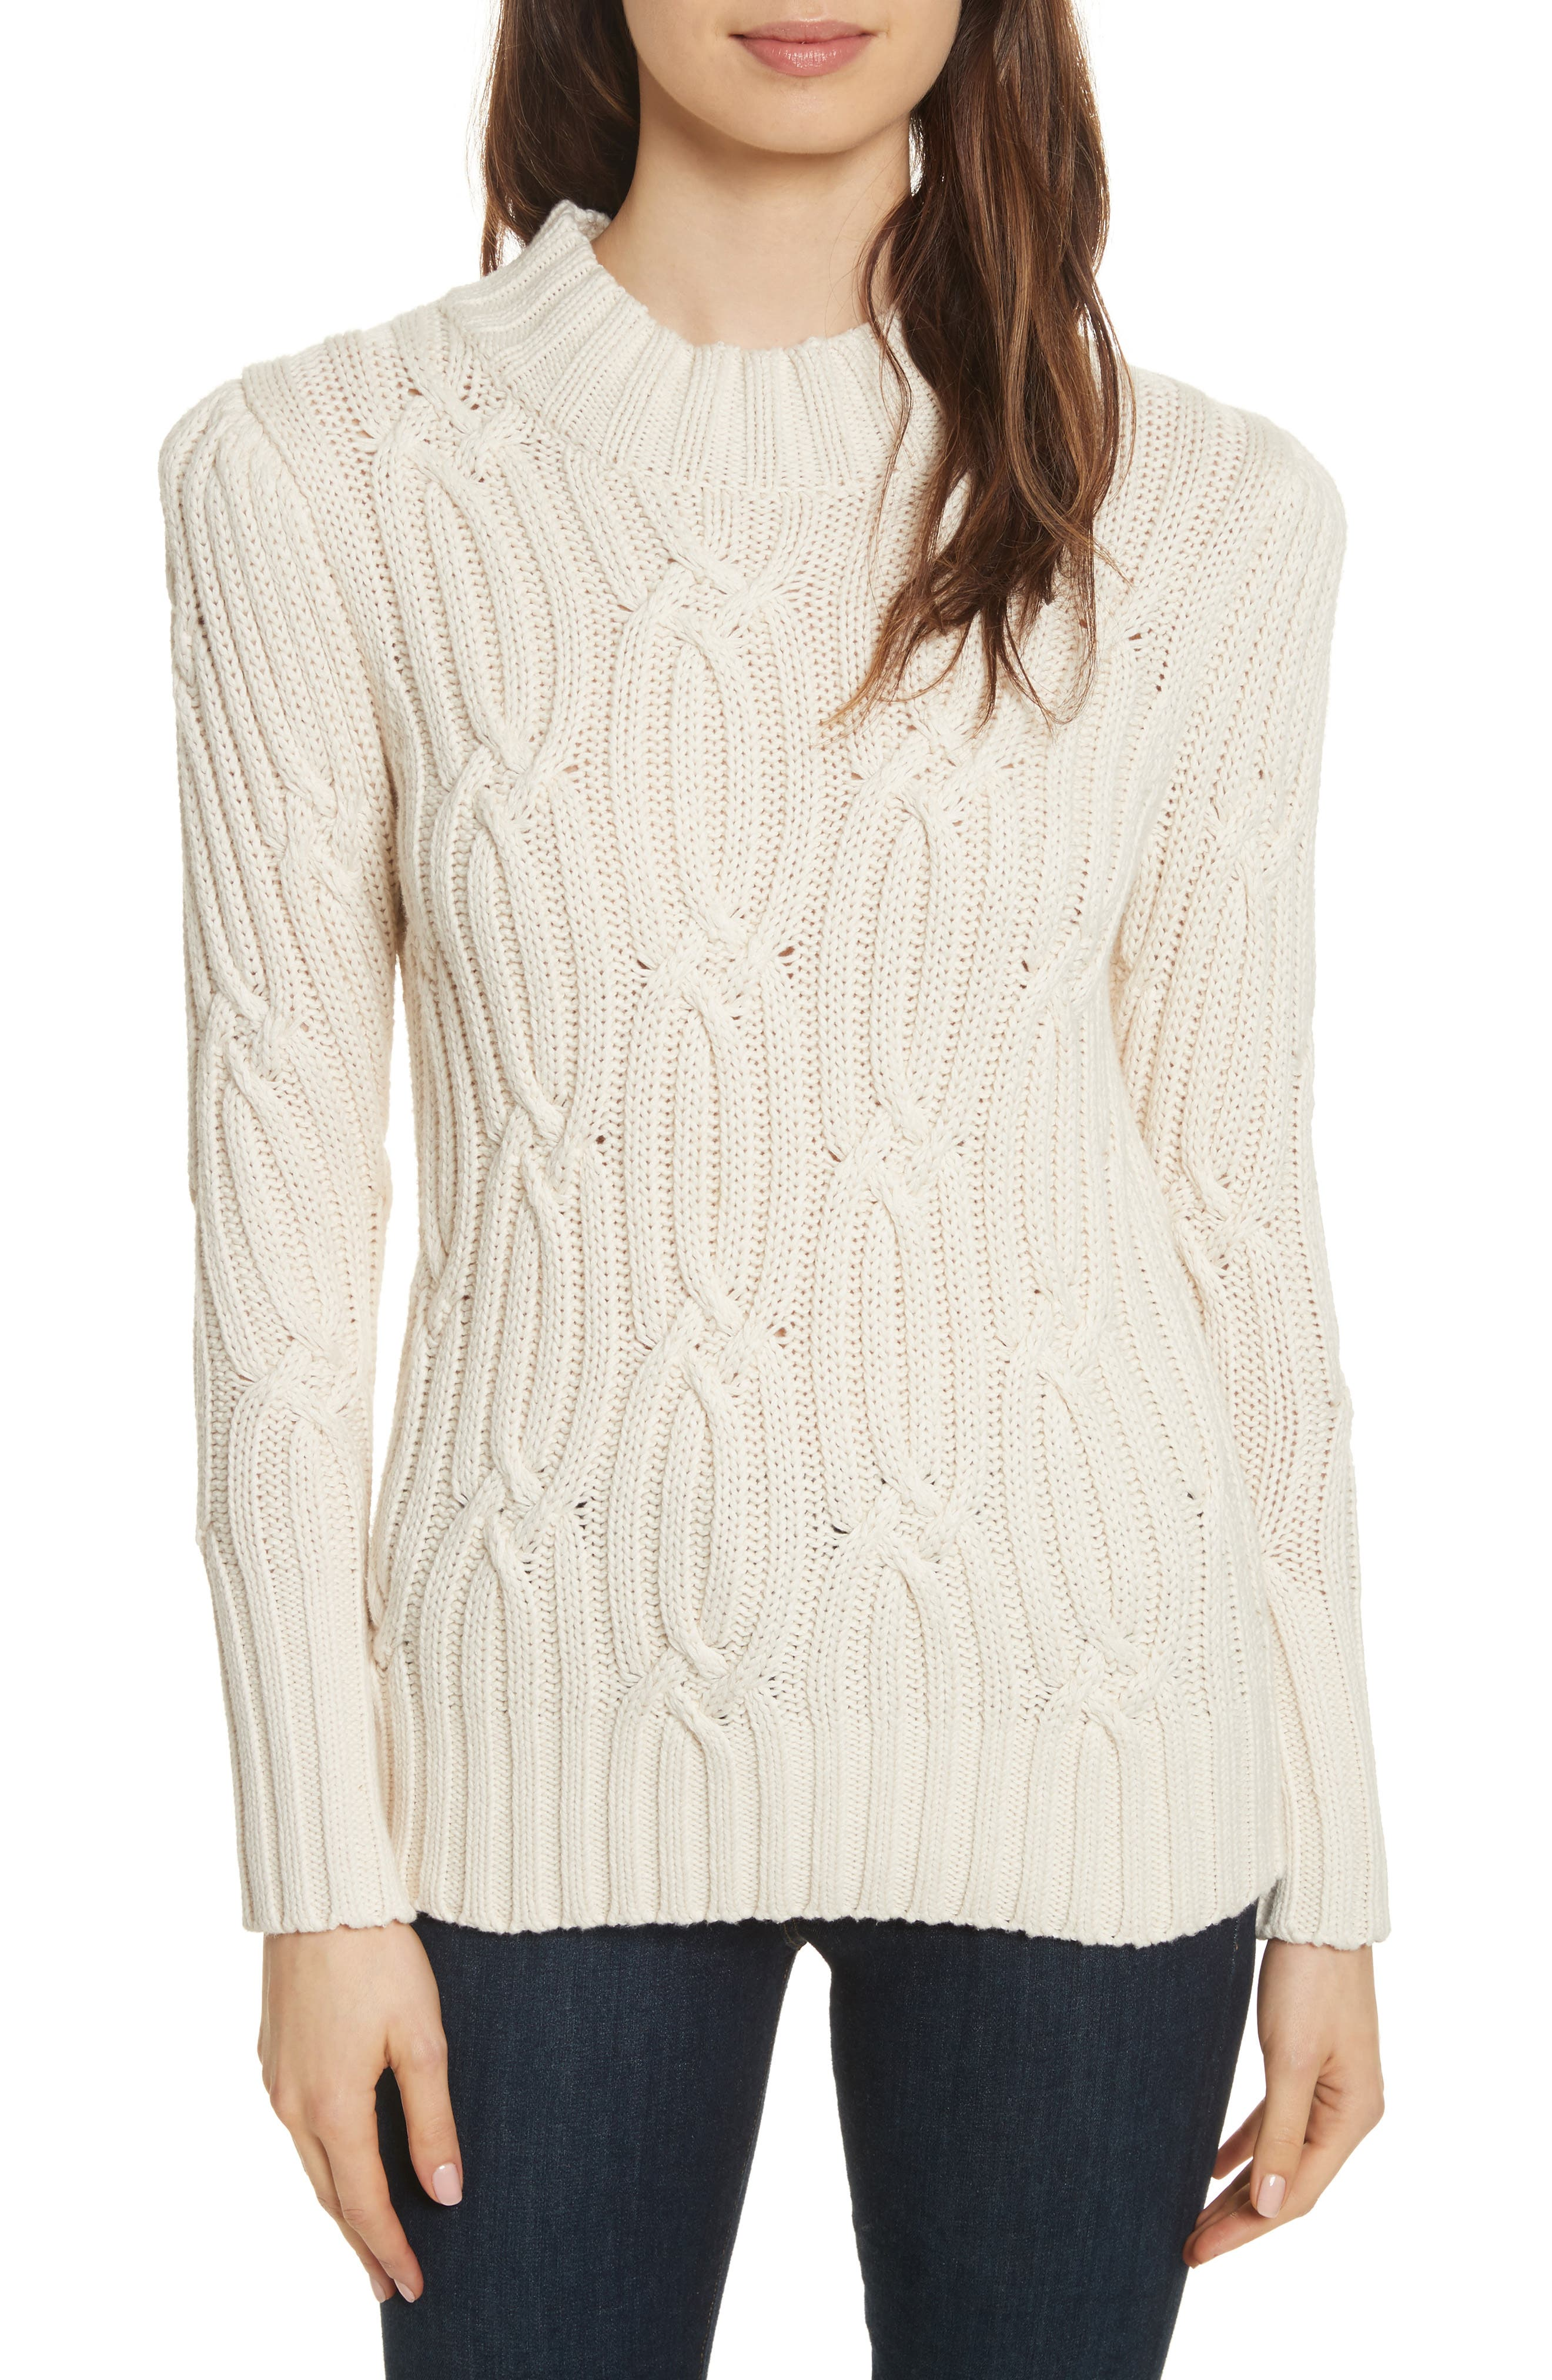 La Vie Rebecca Taylor Cable Knit Sweater